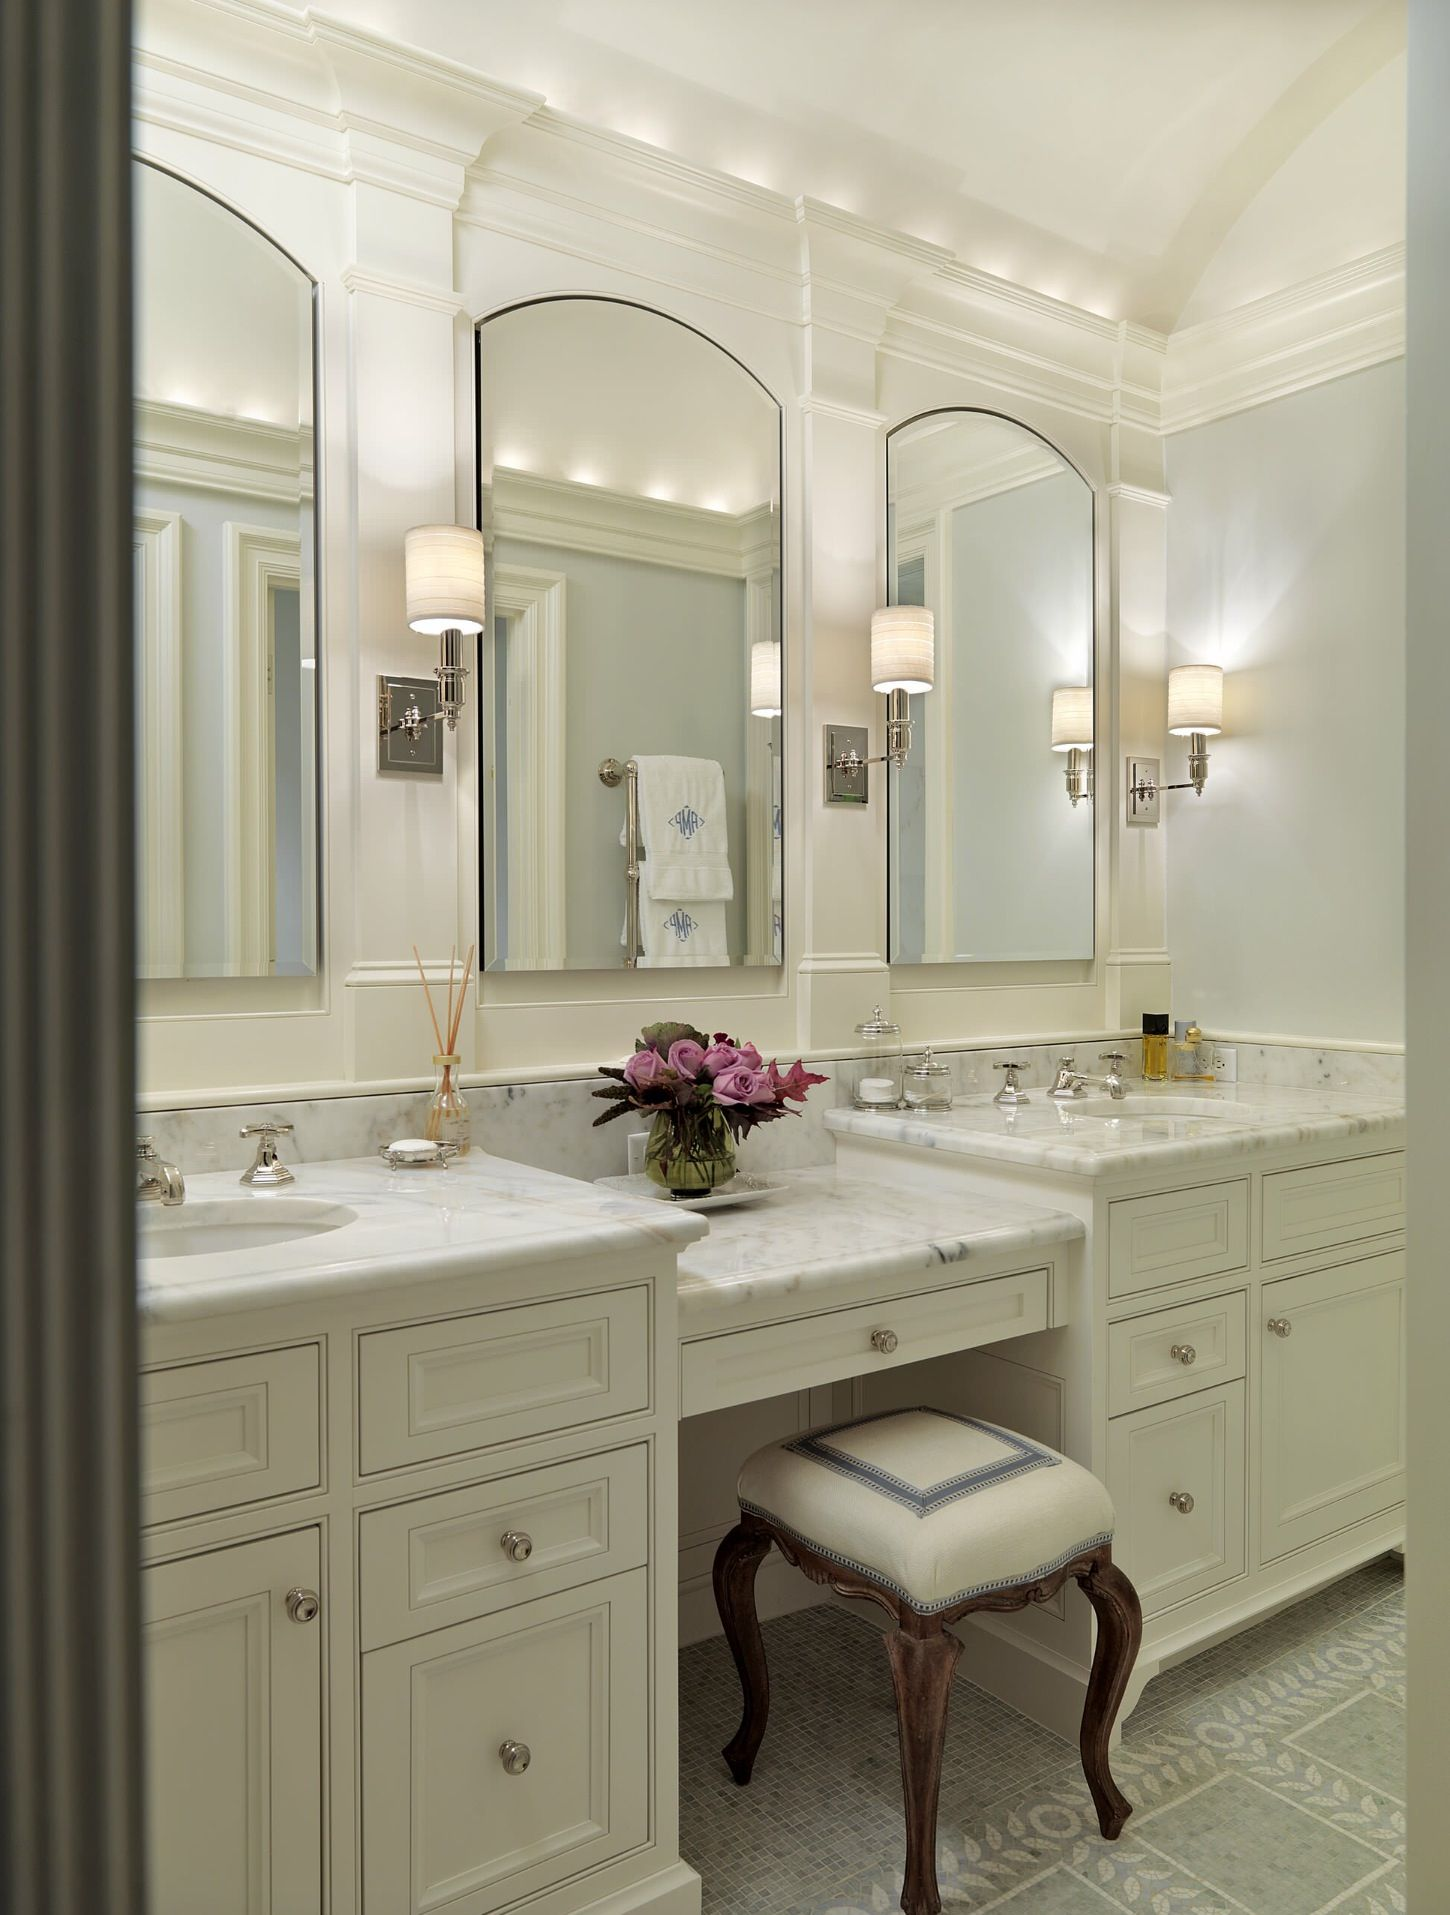 Double Sink With A Vanity Bathroom Remodel Master Master Bathroom Vanity Traditional Bathroom